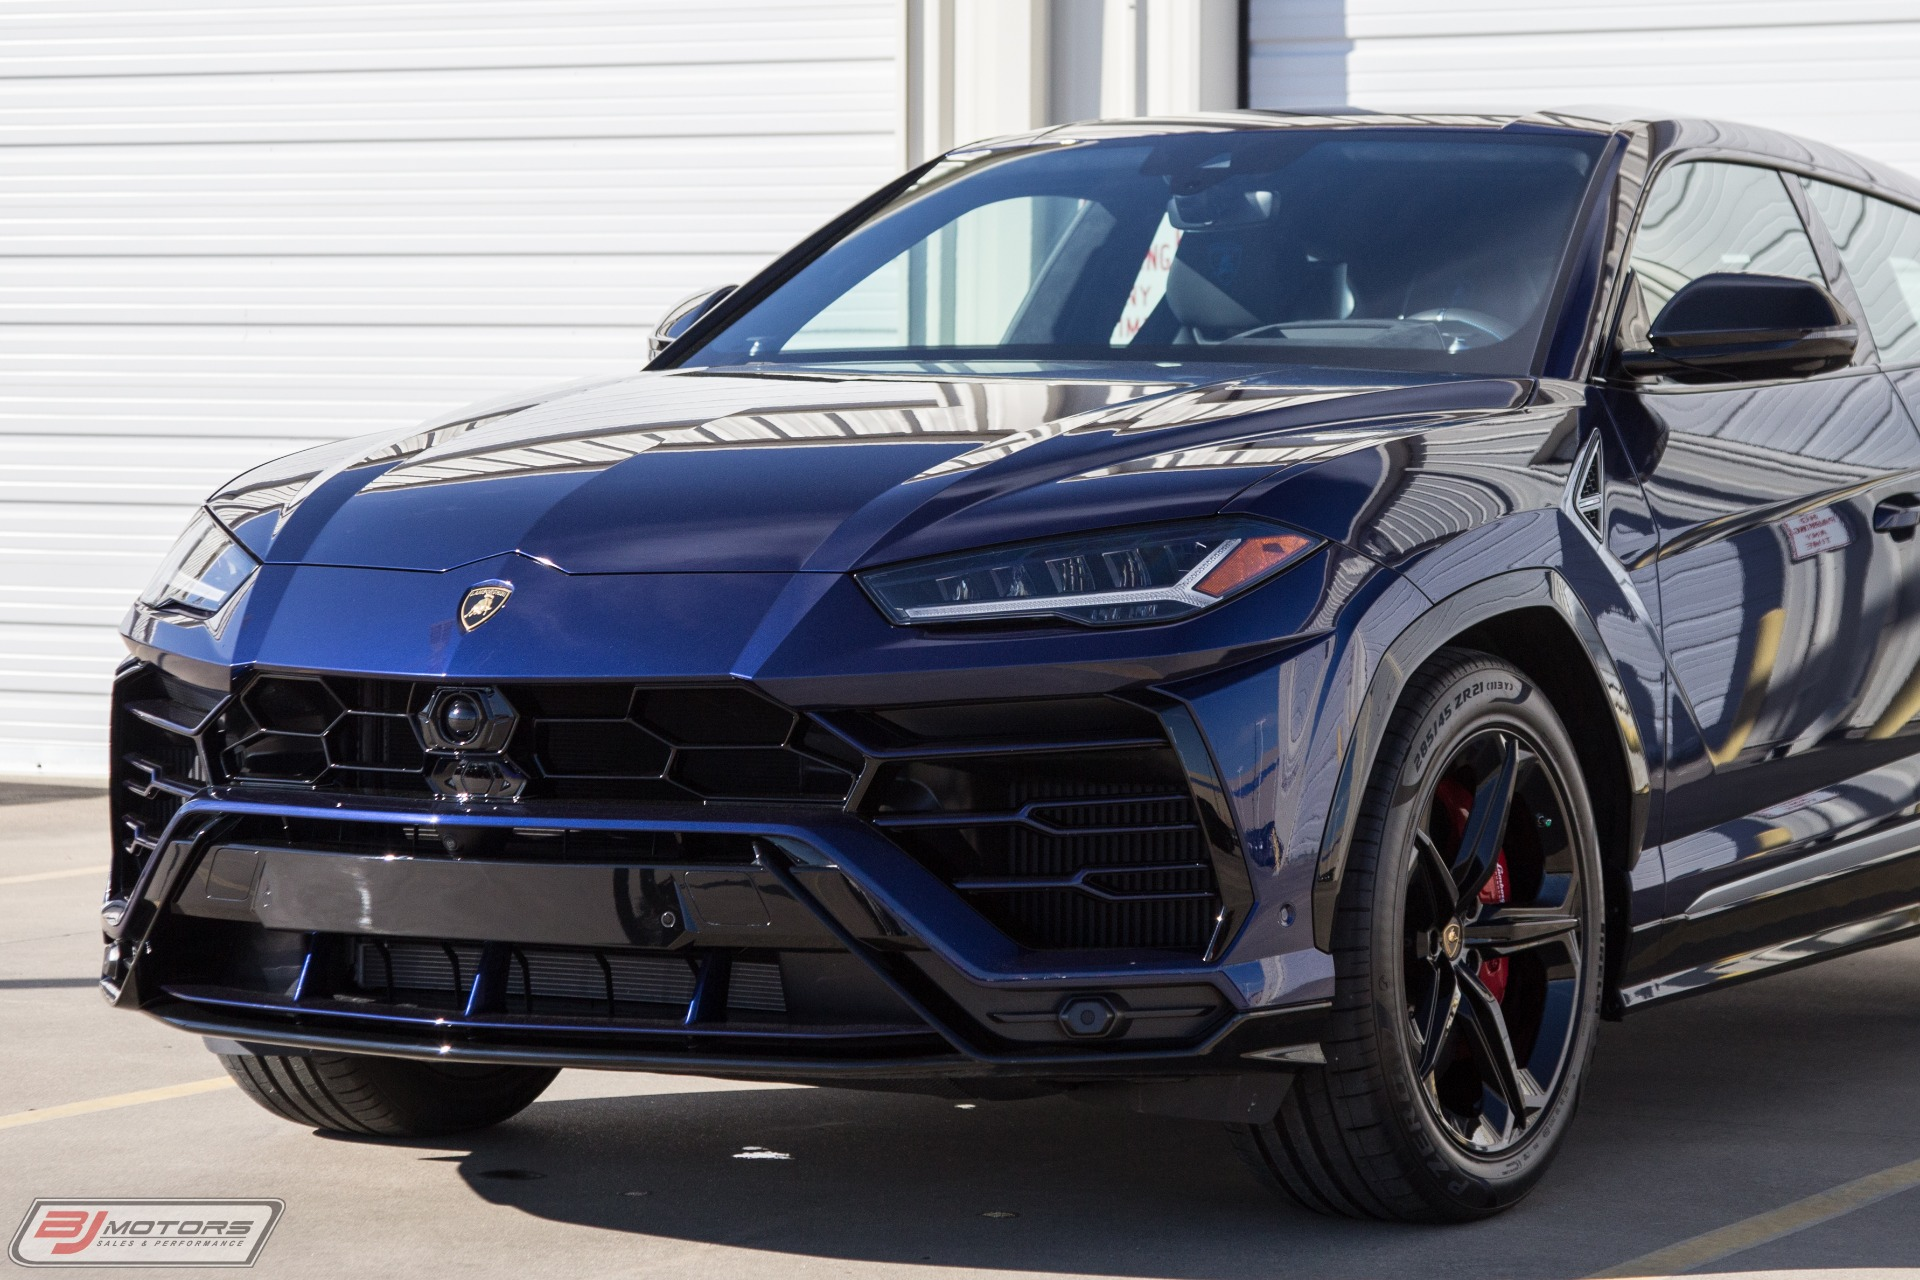 Used 2019 Lamborghini Urus For Sale 249 995 Bj Motors Stock